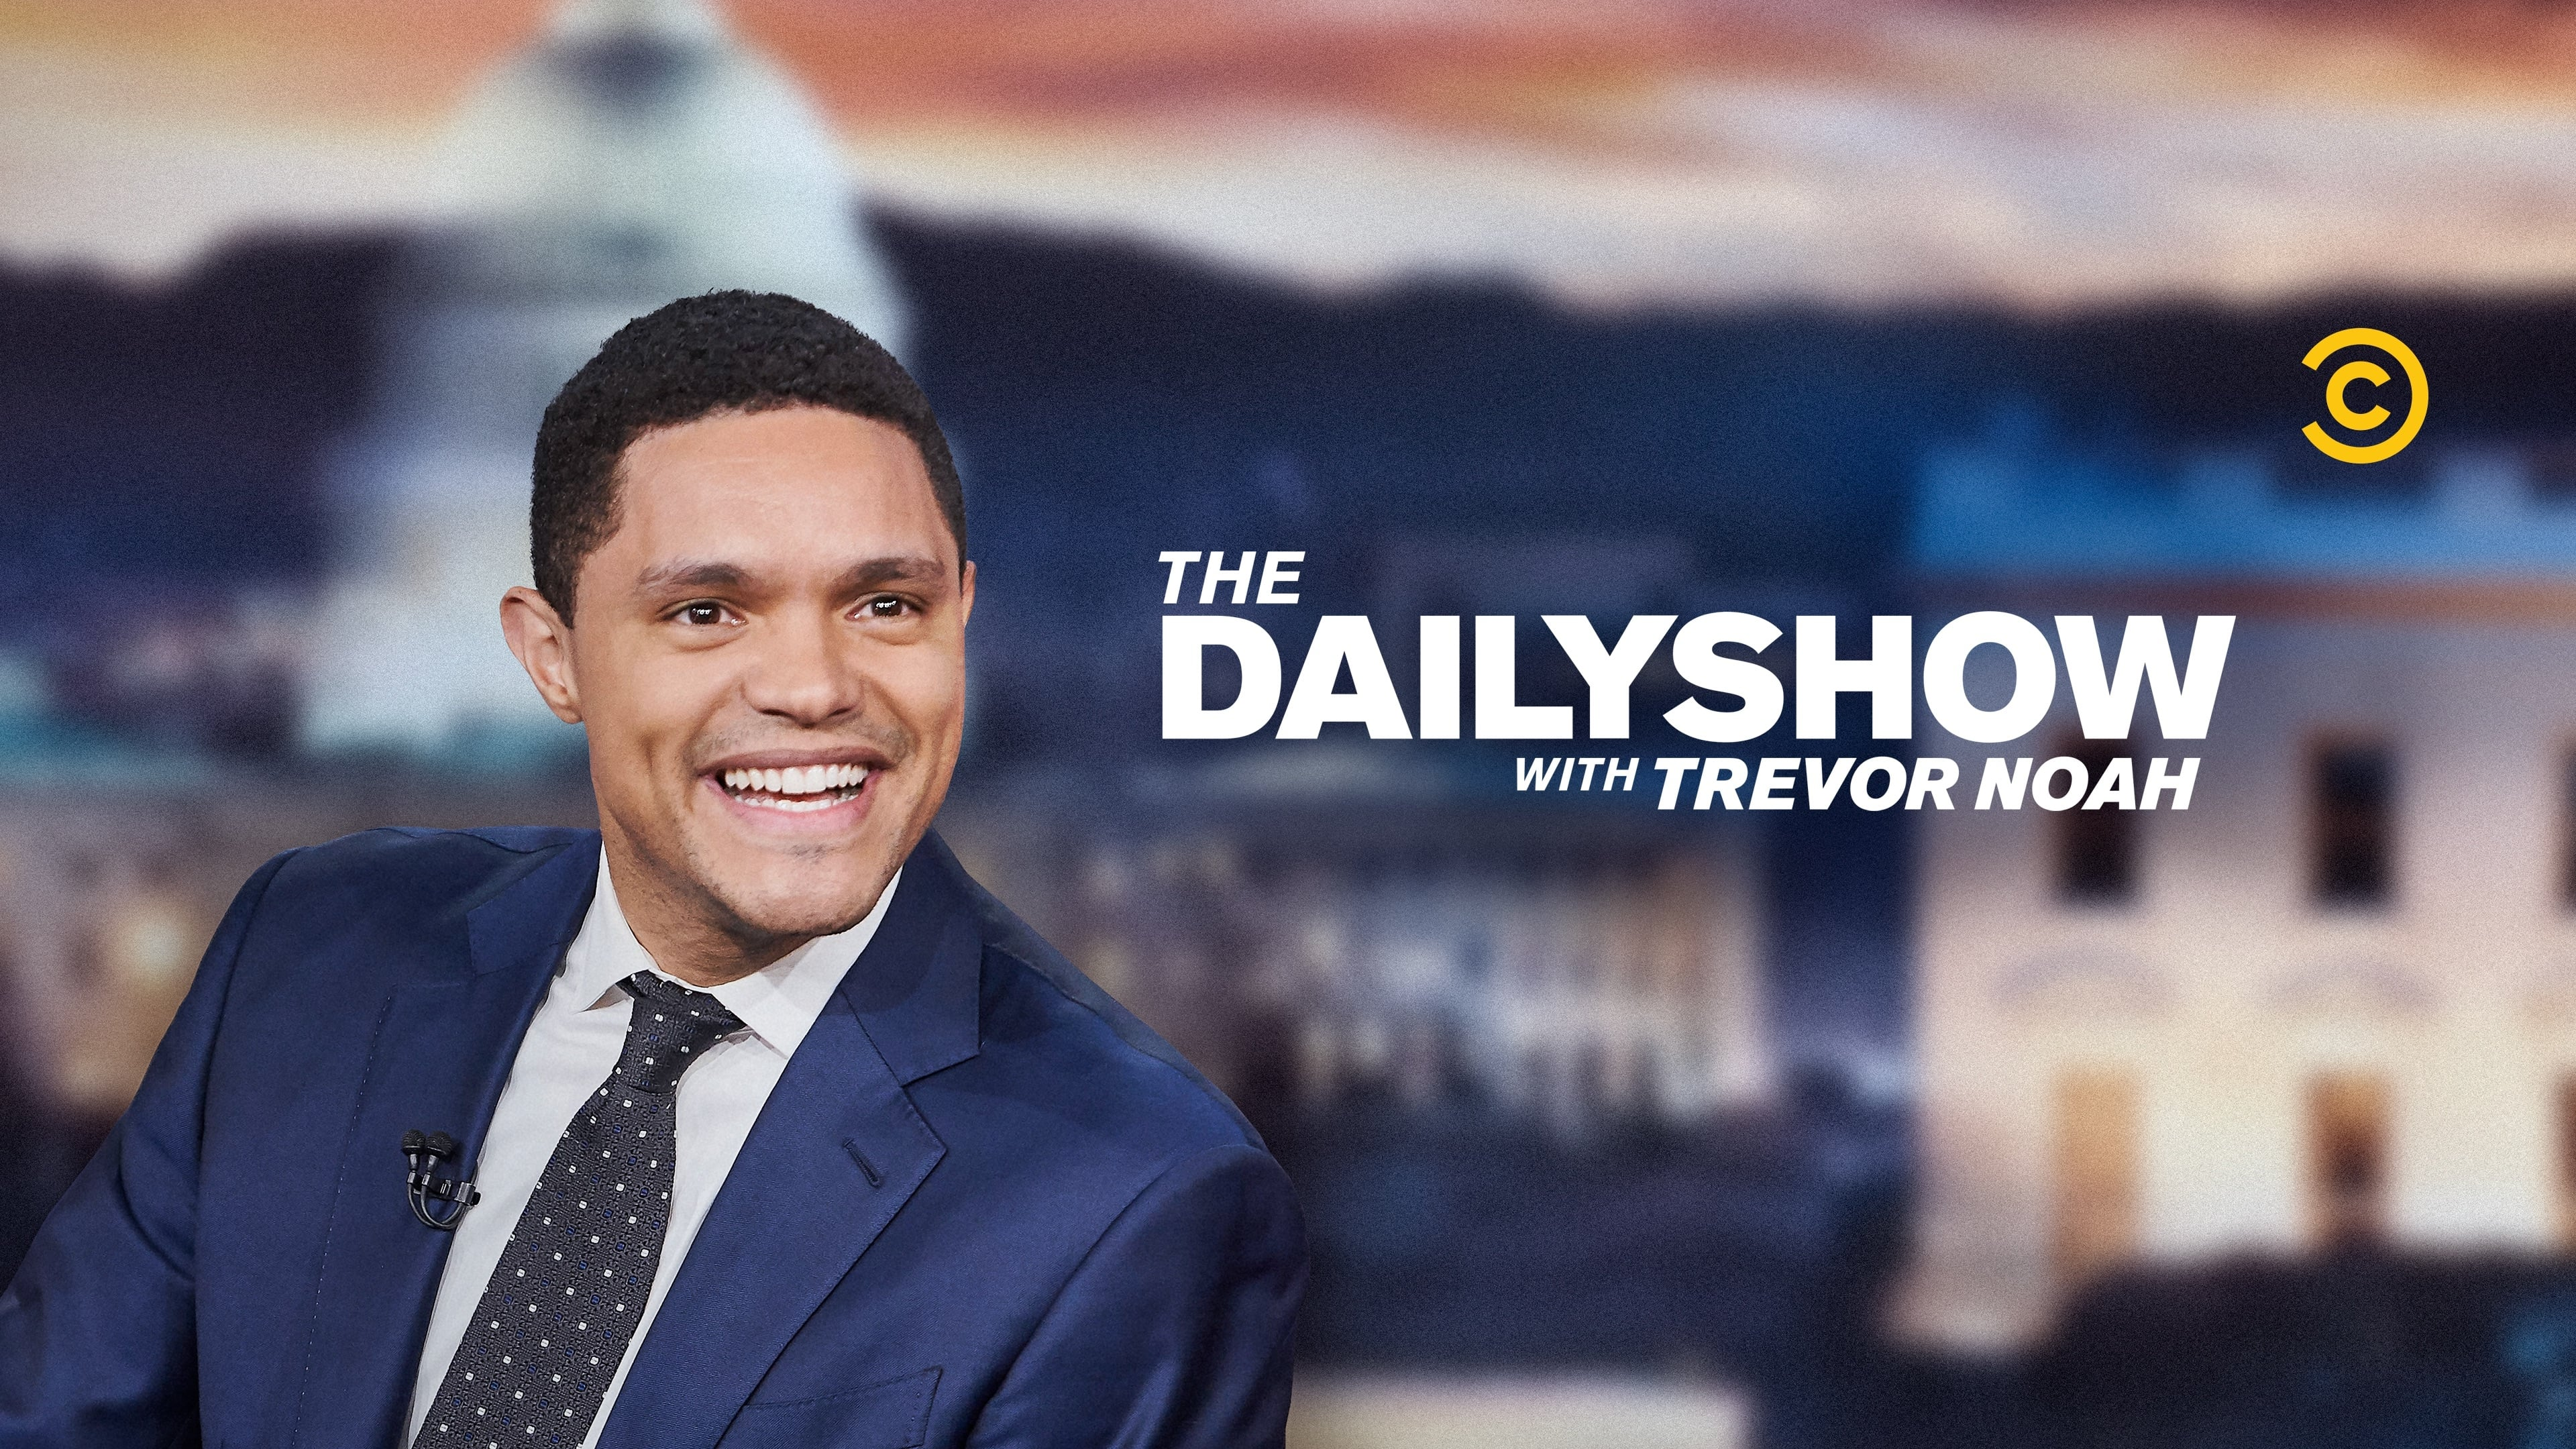 The Daily Show with Trevor Noah - Season 4